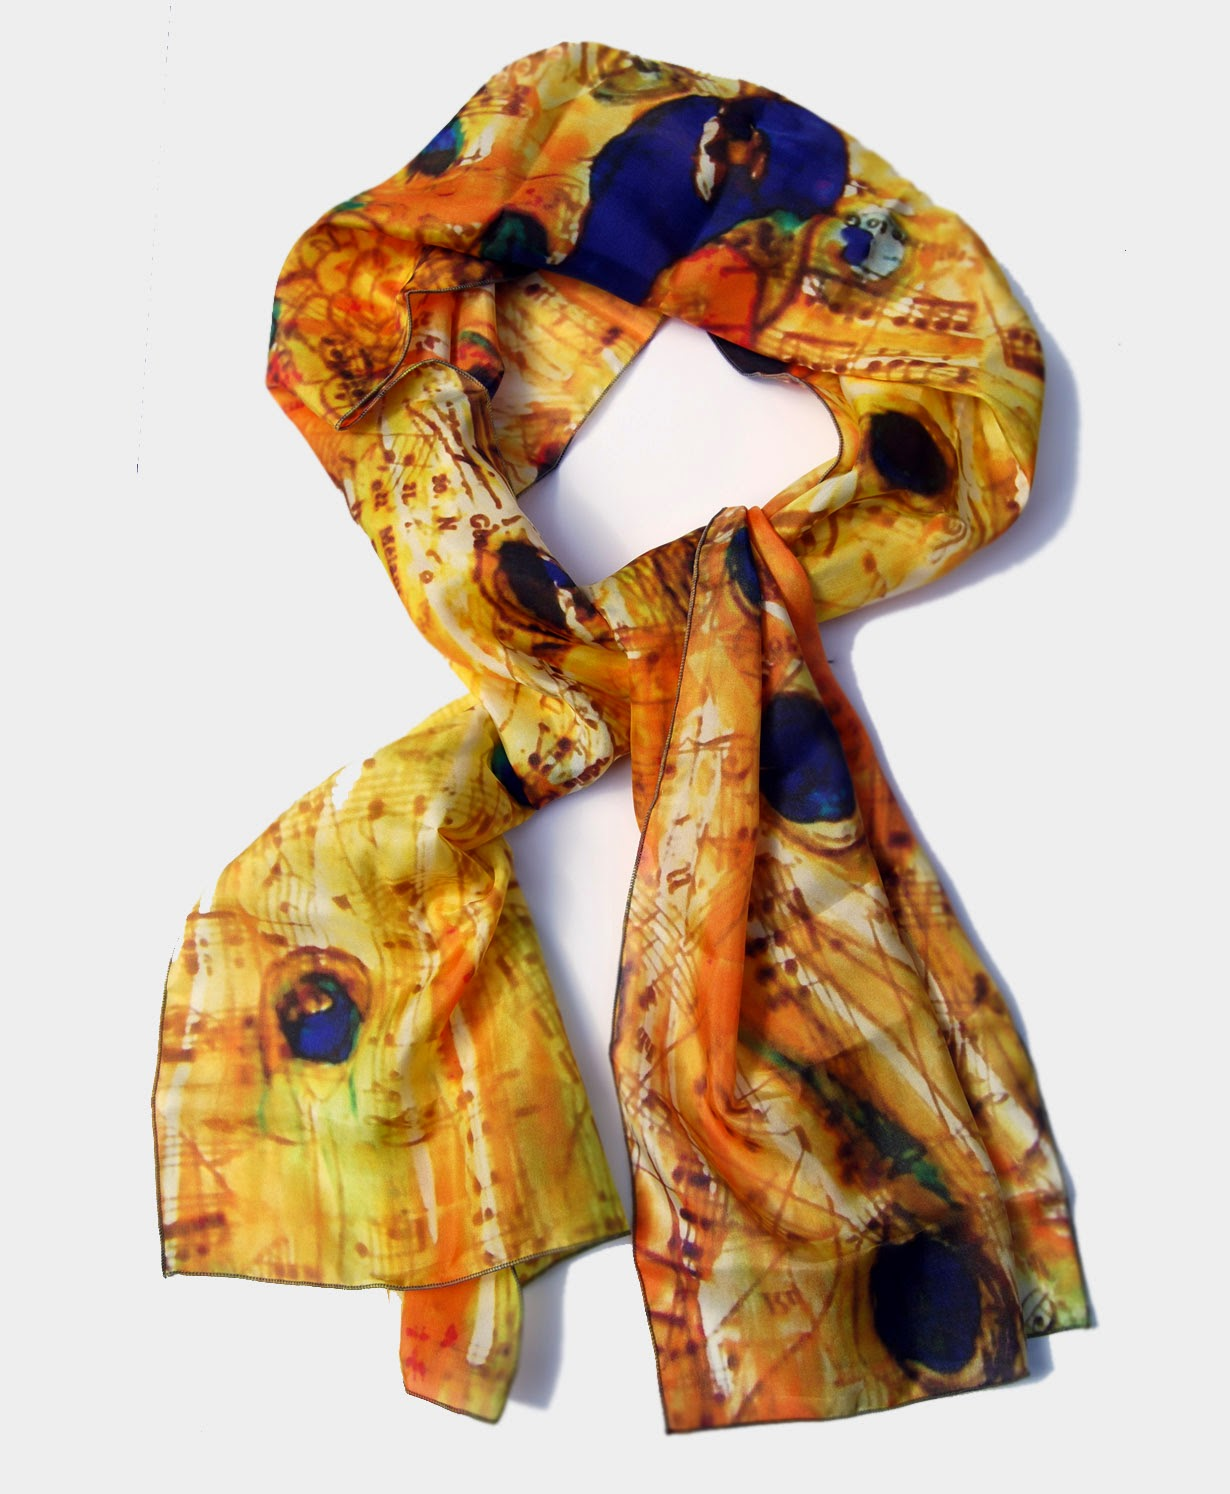 printed yellow scarf trendy for fall 2014 https://www.etsy.com/listing/201921784/printed-peacock-silk-scarf-yellow-scarf